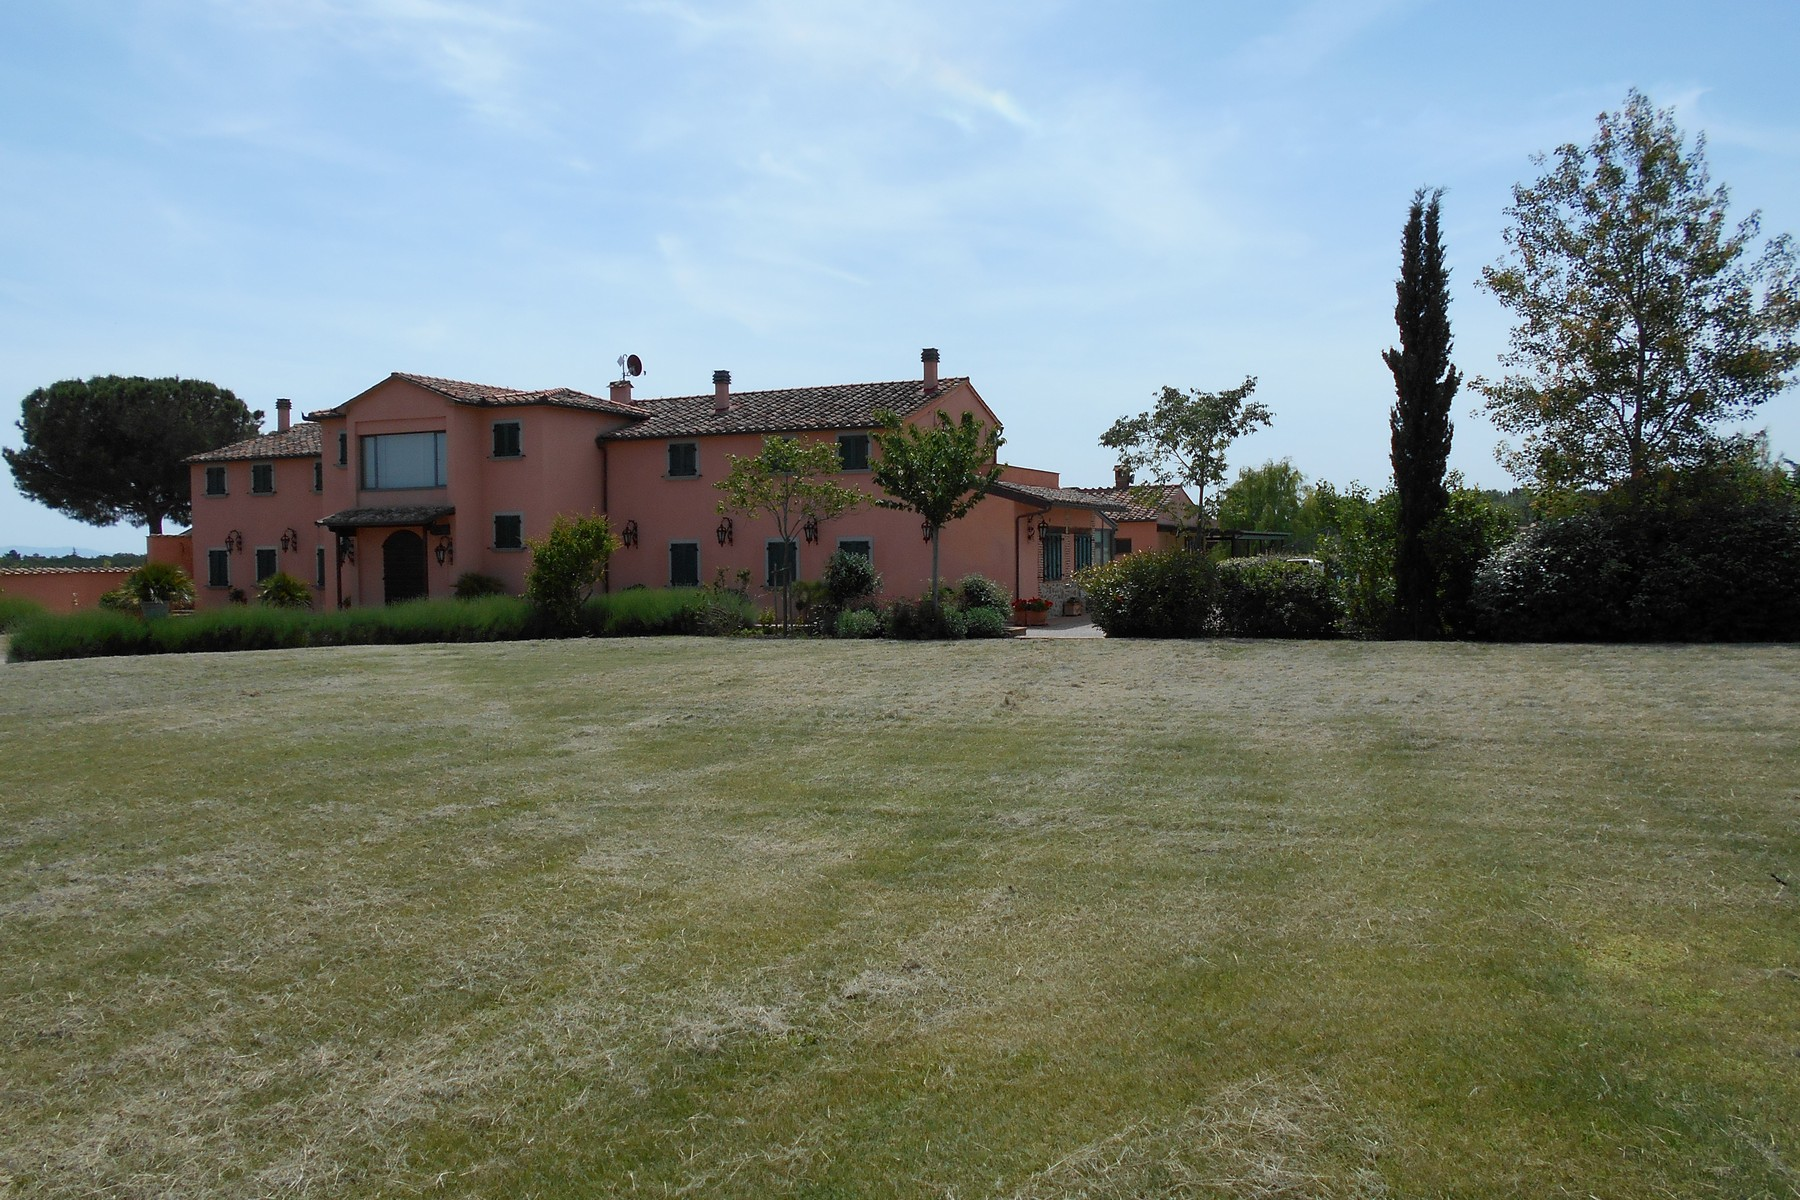 Additional photo for property listing at Exclusive property with pool and tennis court Località Ferretto Autres Perugia, Perugia 06010 Italie